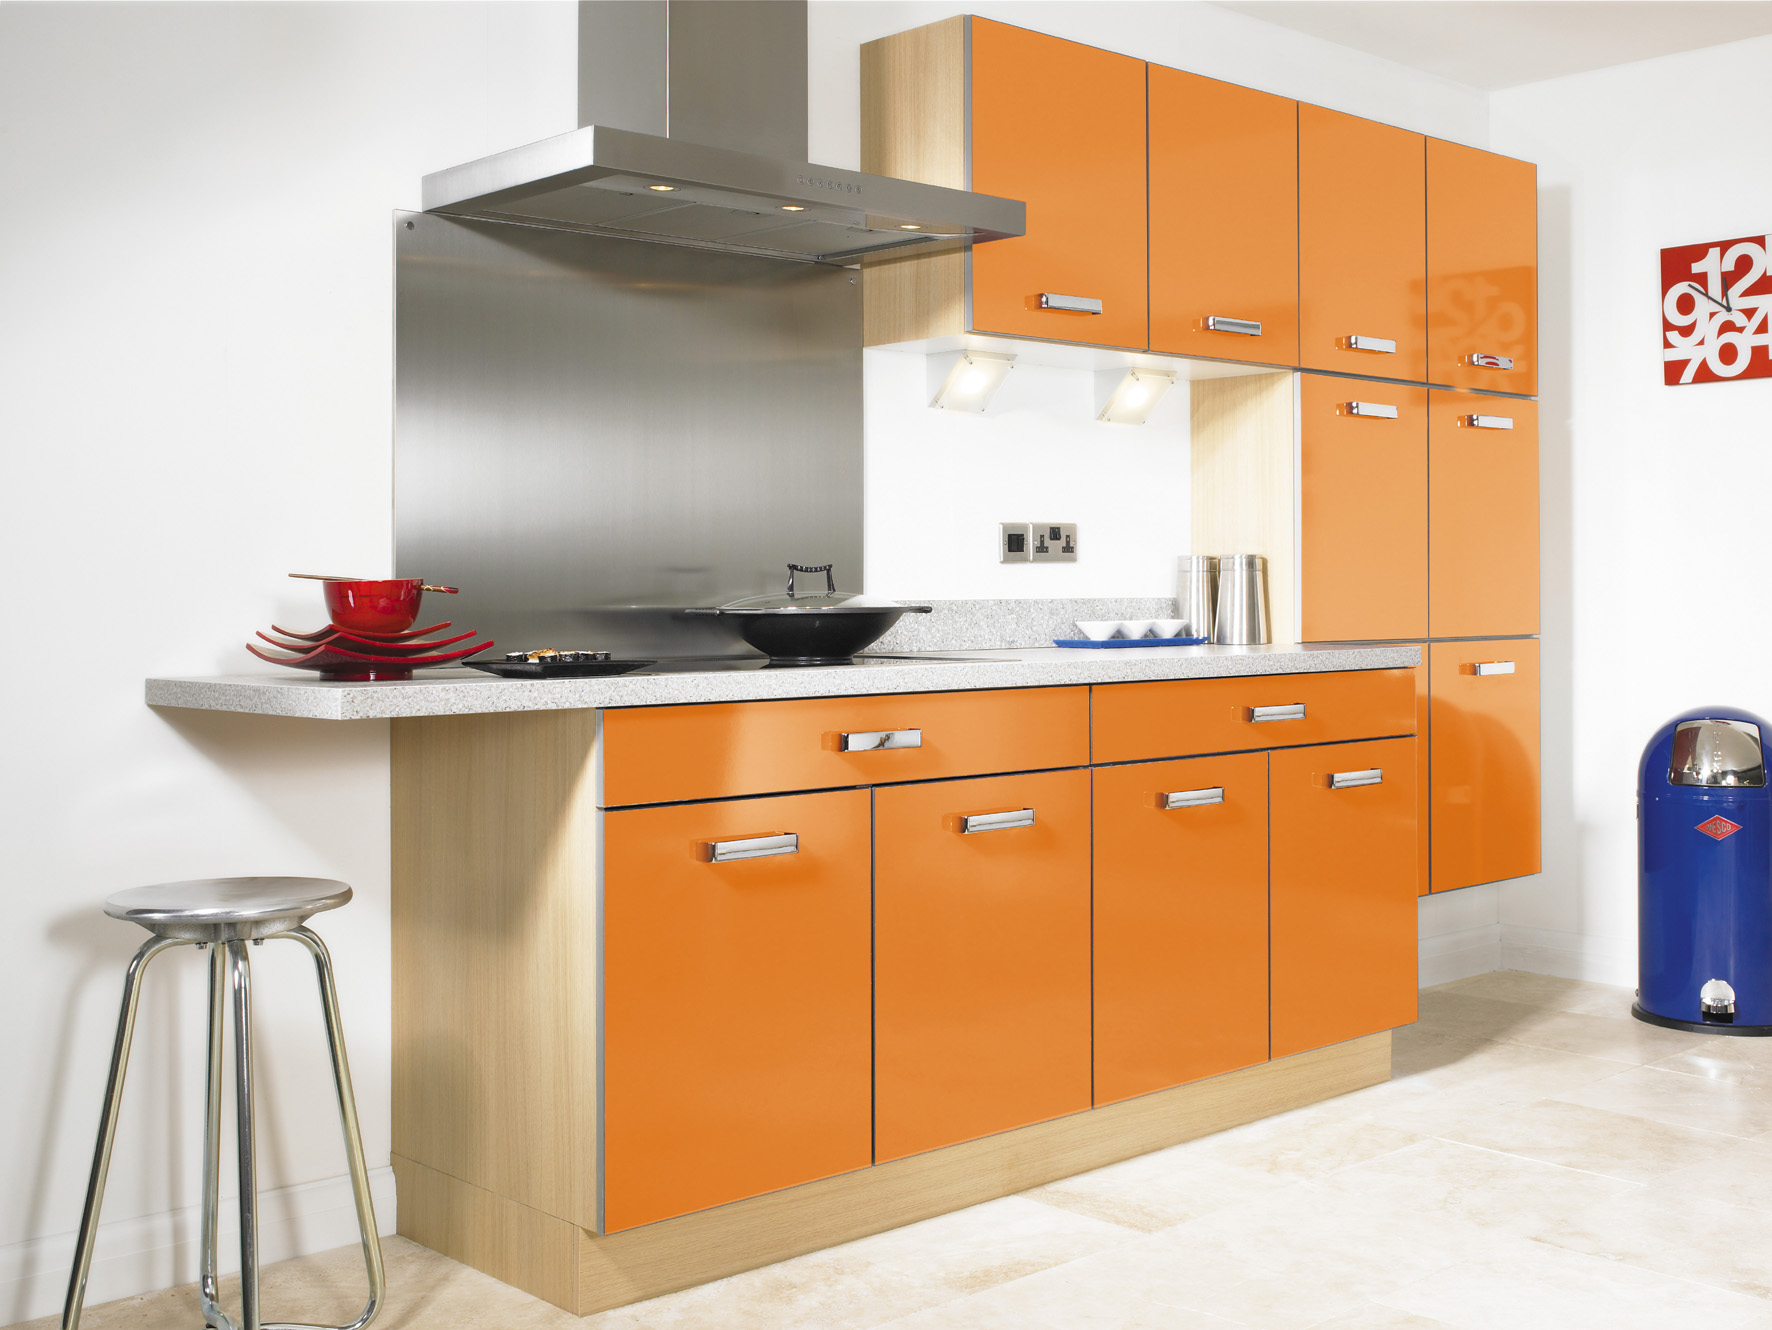 Amazing Orange Kitchen Design 1772 x 1330 · 364 kB · jpeg